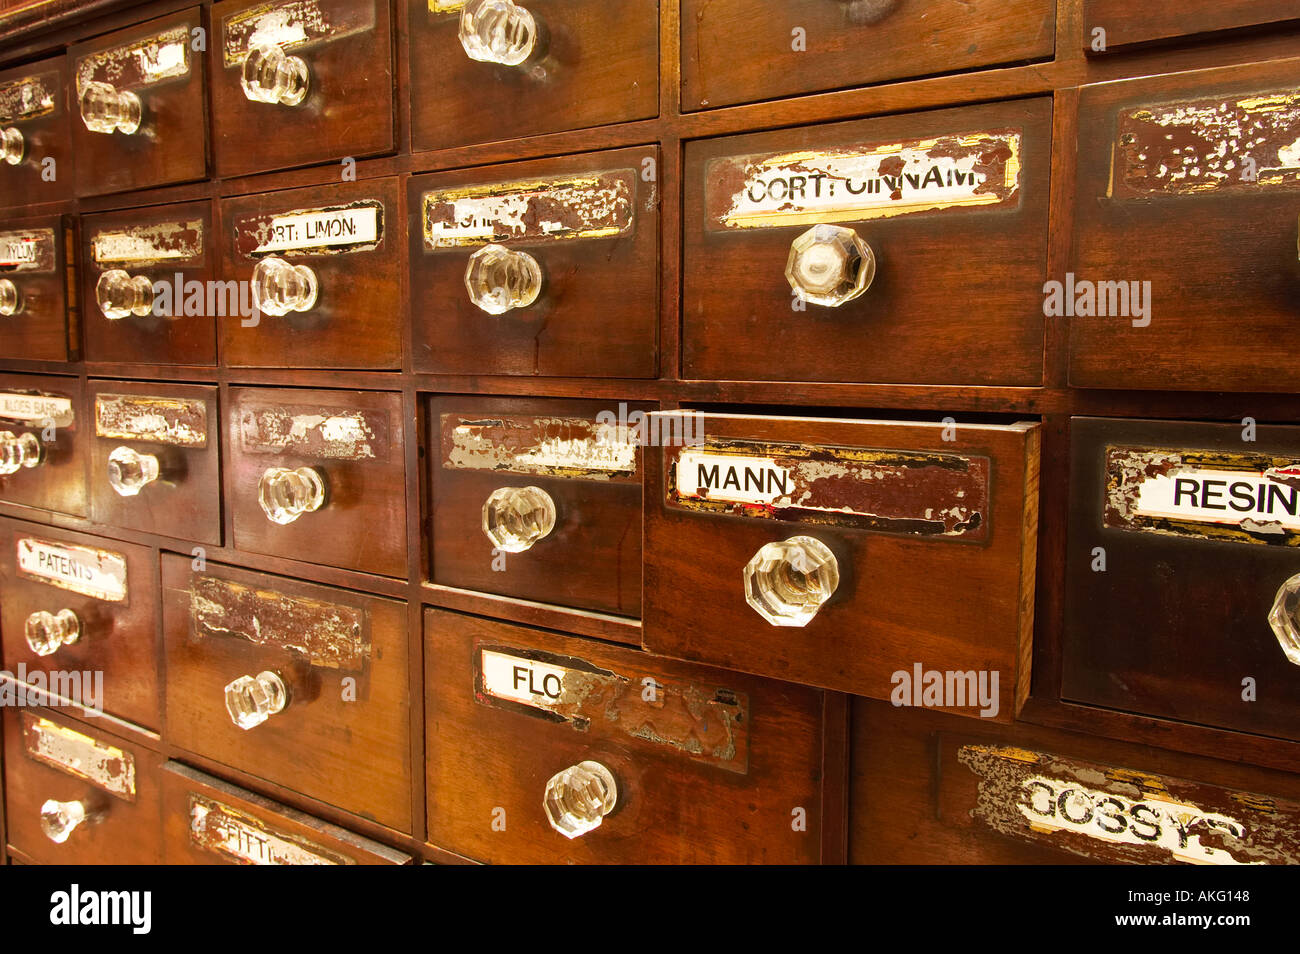 Antique apothecary chest of drawers UK - Stock Image